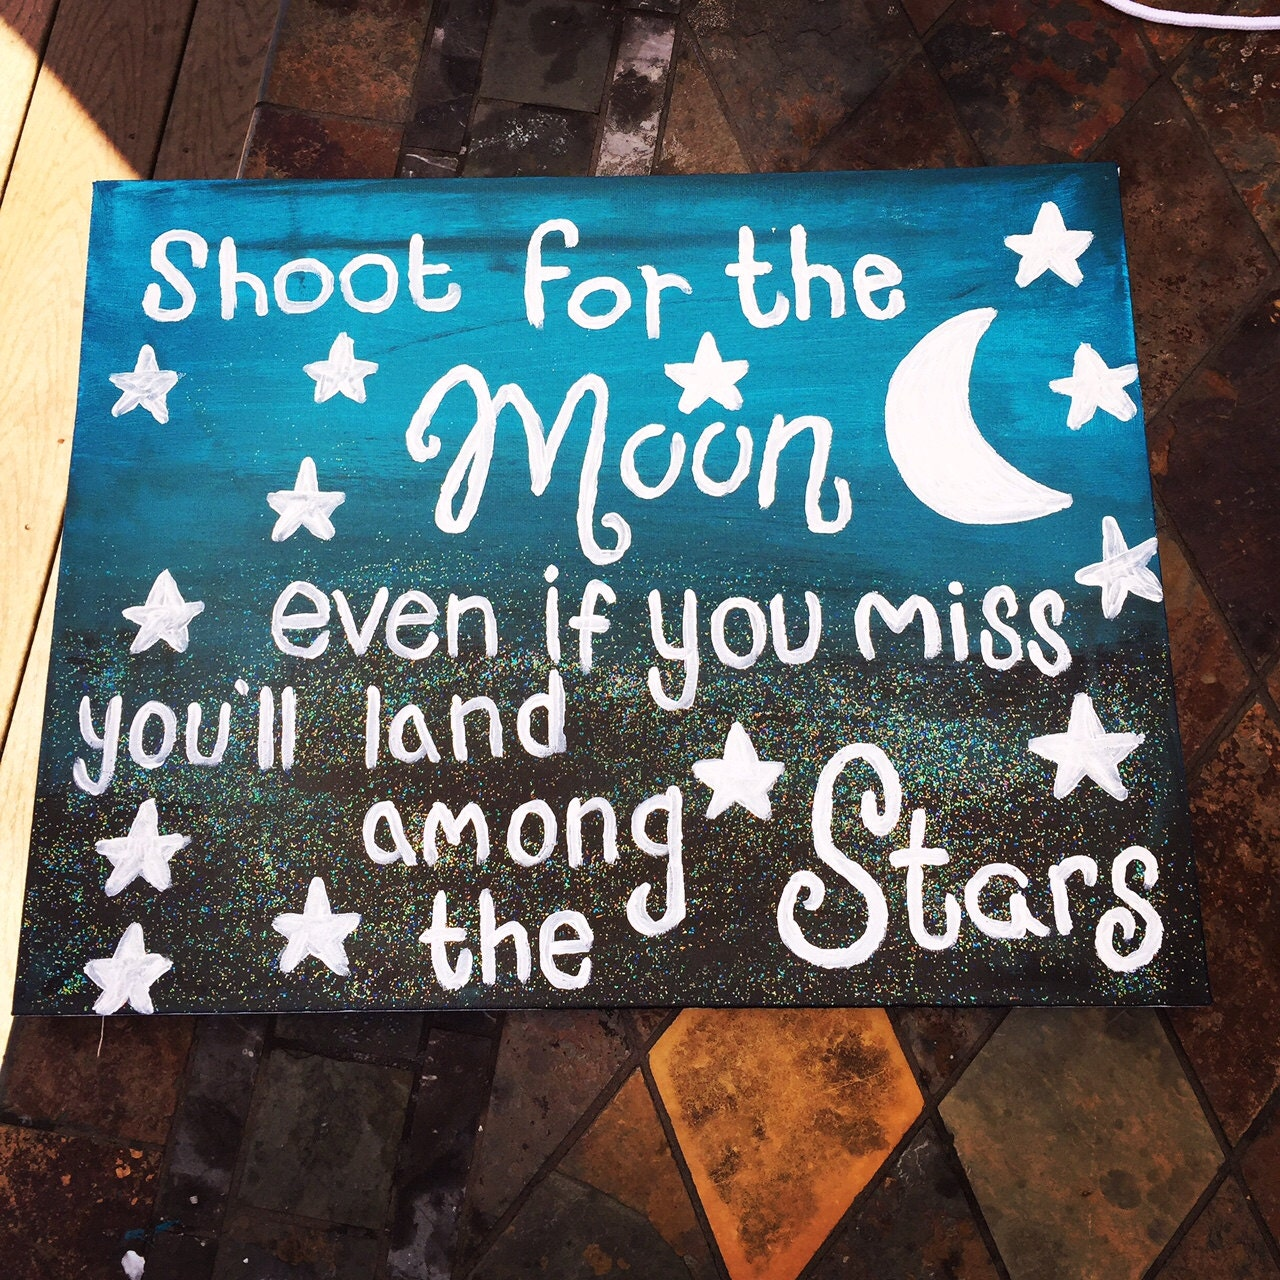 Inspirational Quotes On Pinterest: Kids Room Canvas Shoot For The Moon Even If You Miss By